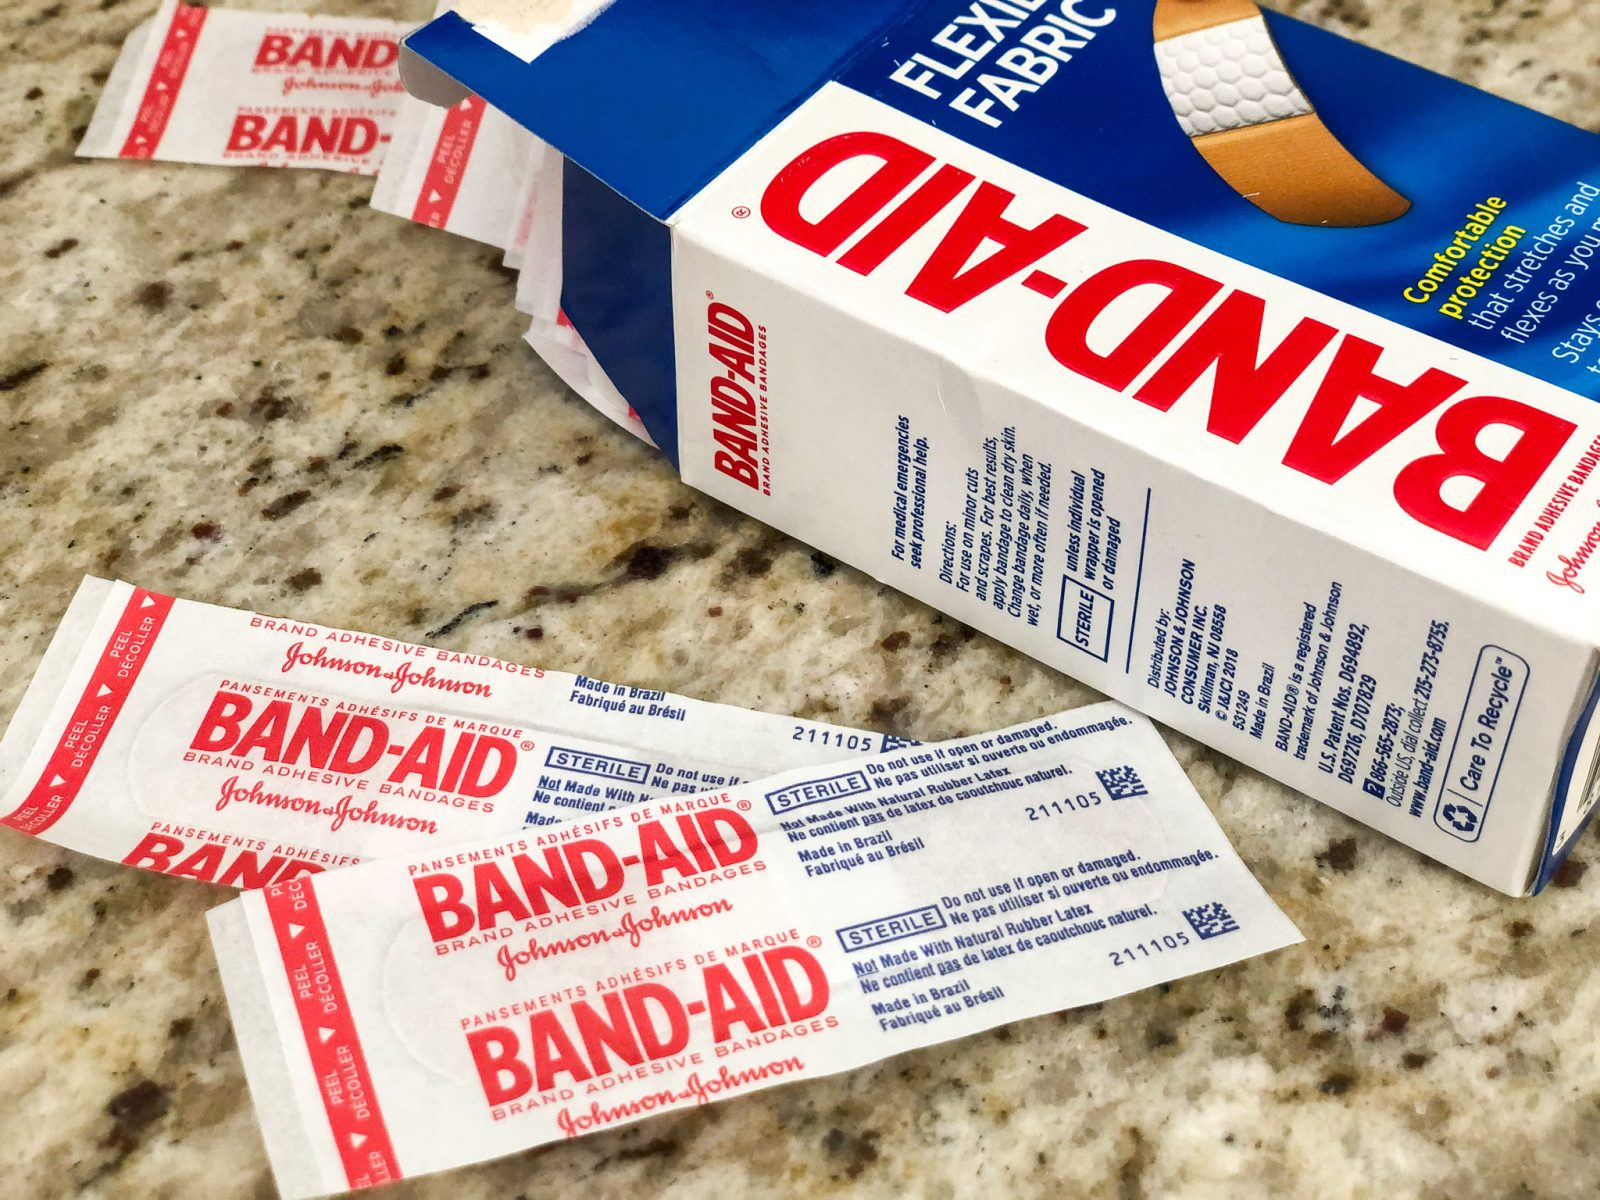 New Band-Aid Printable Coupon - Bandages As Low As FREE At Publix on I Heart Publix